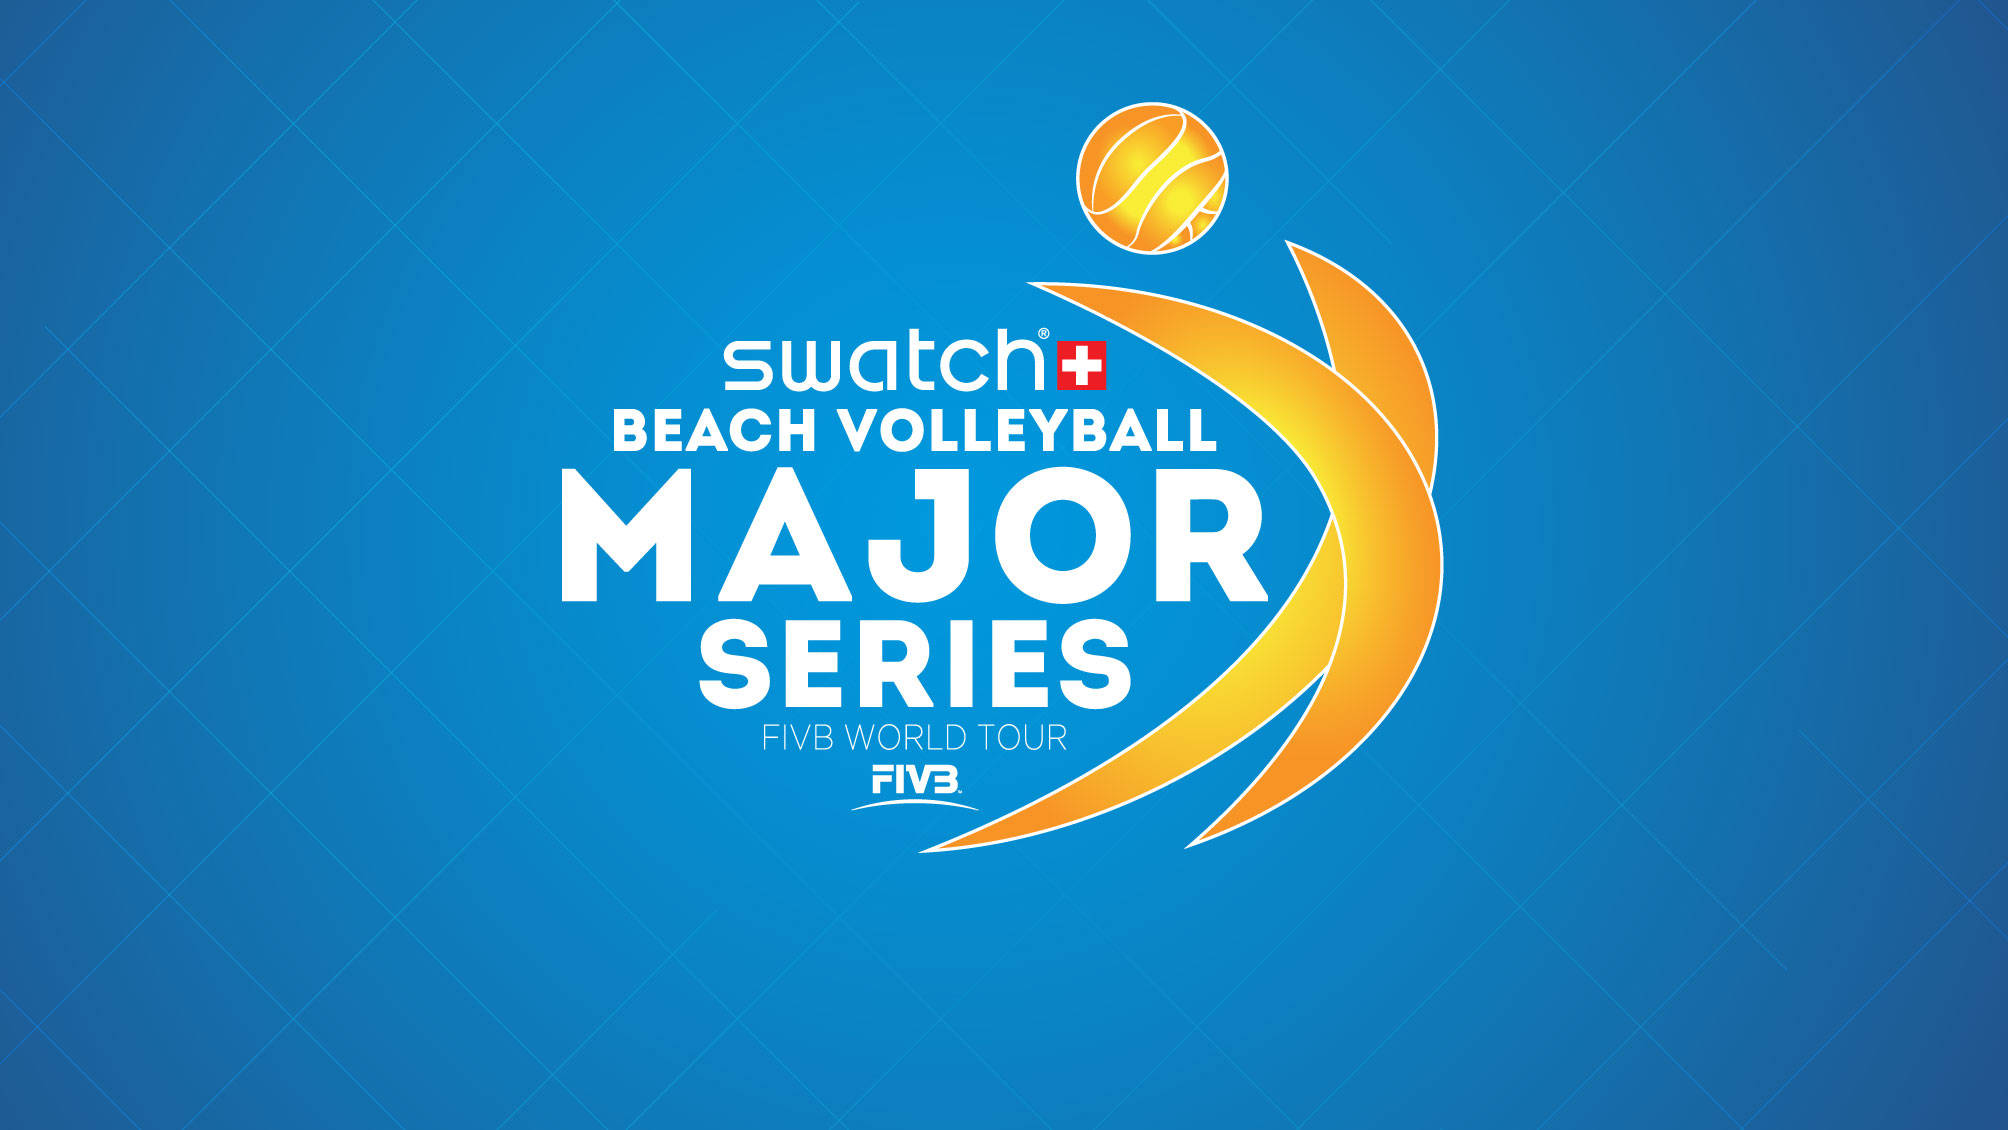 Swatch beach volleyball Major Series 2016